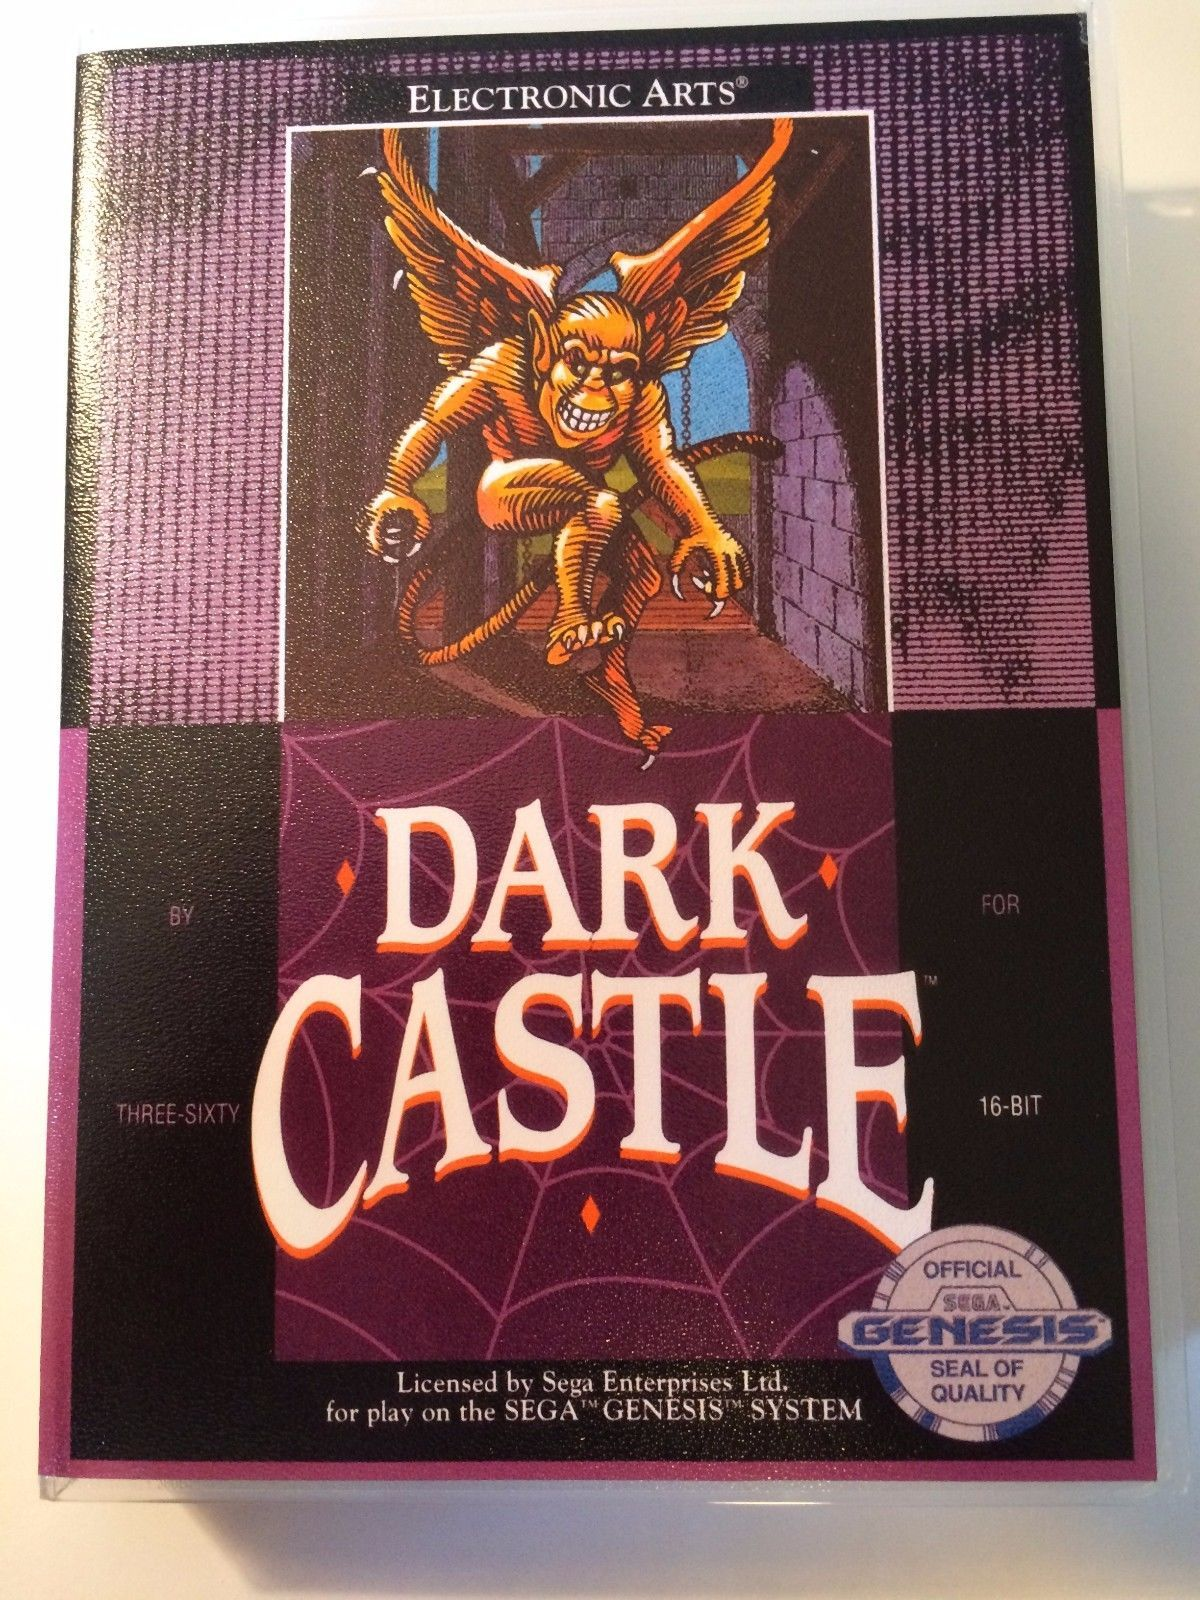 Dark Castle - Sega Genesis - Replacement Case - No Game